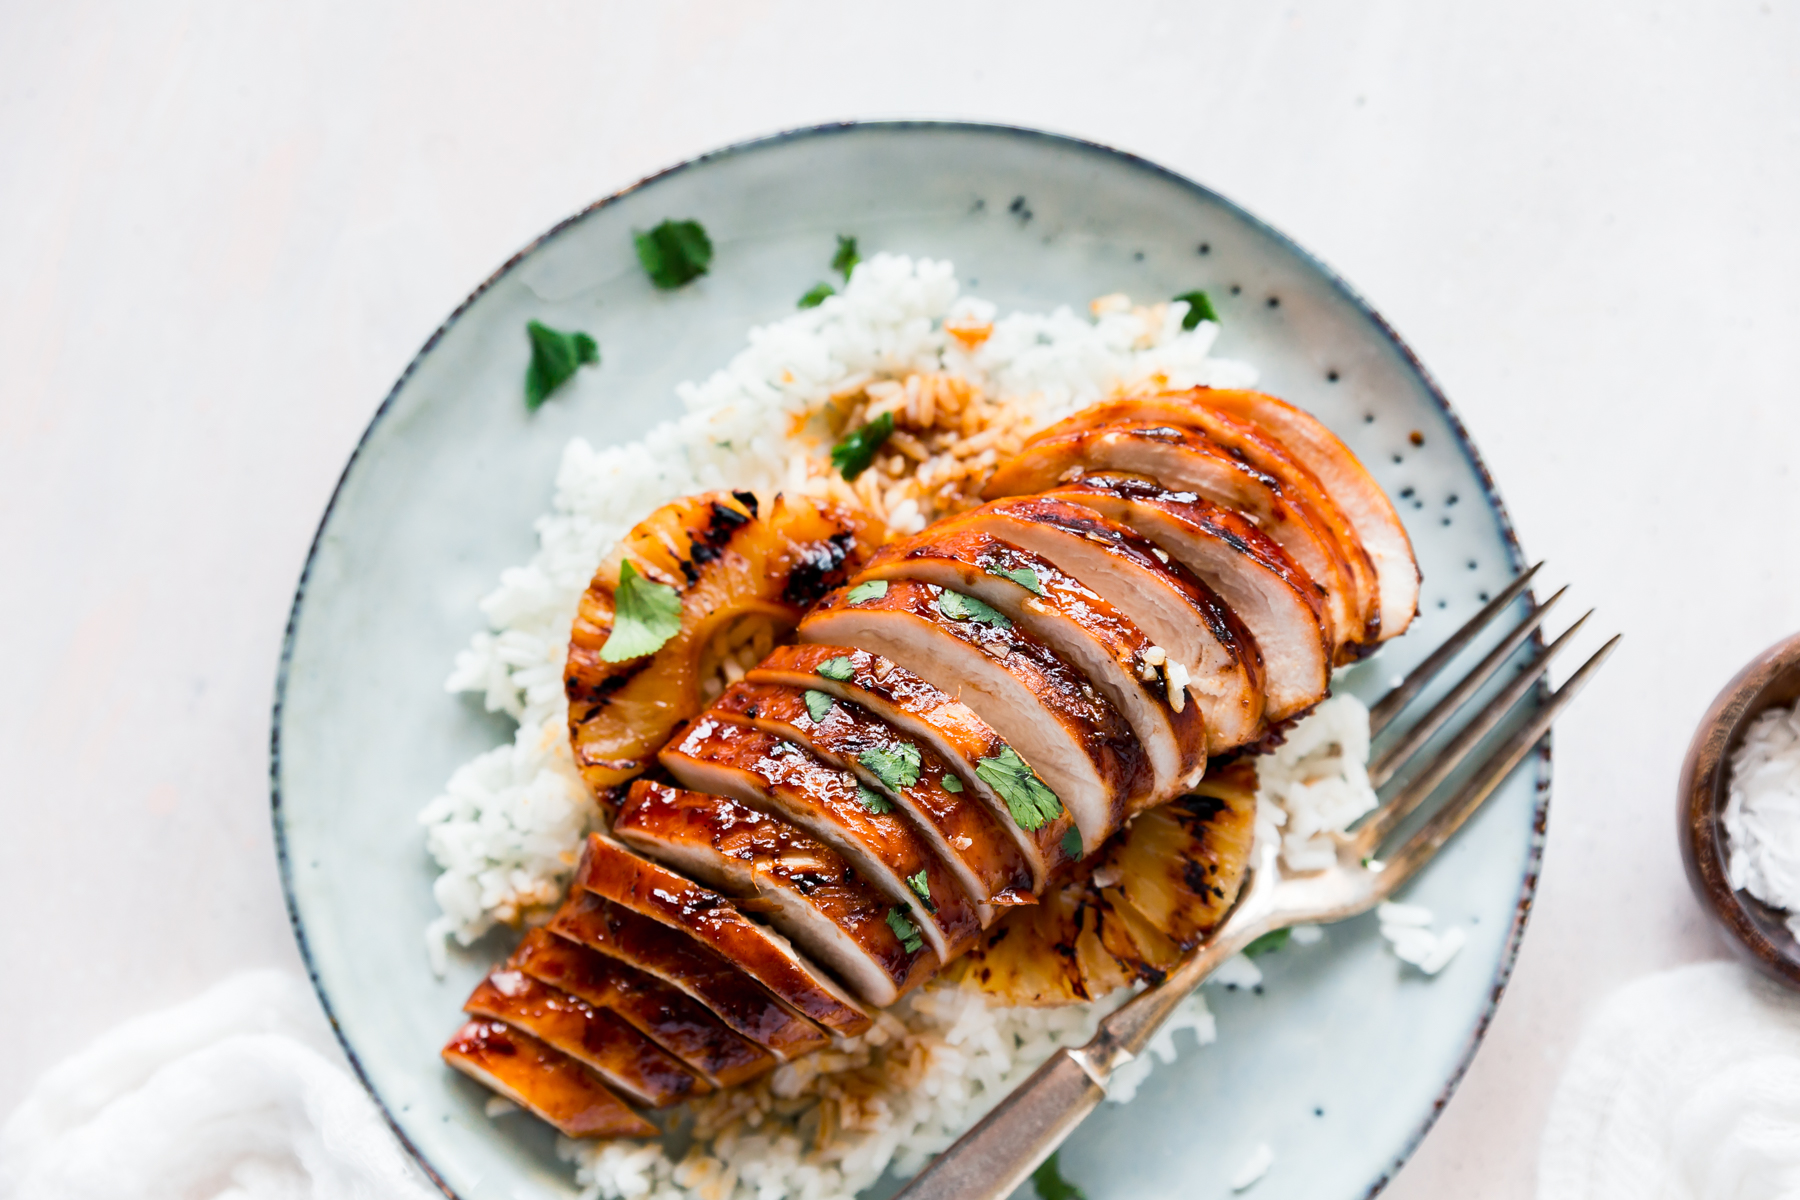 Hawaiian barbecue Chicken with pineapple on rice is a yummy meal